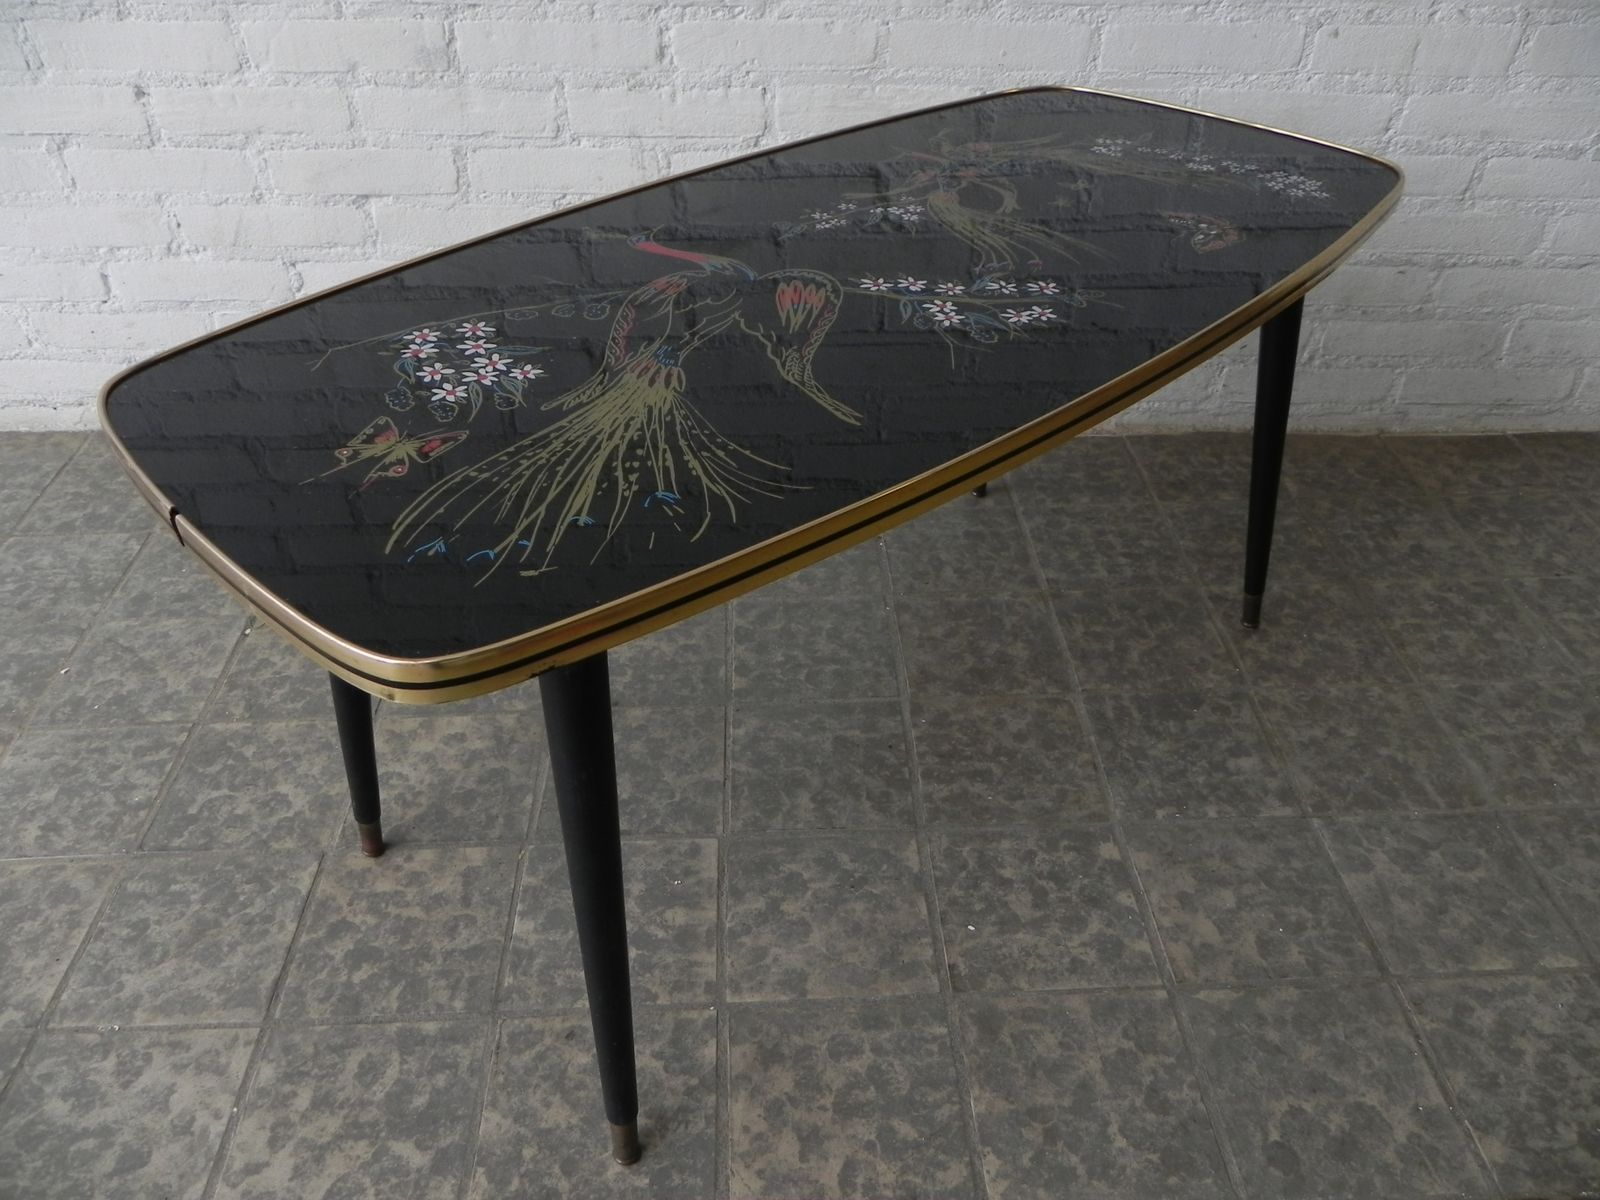 table basse vintage avec plateau en verre 1950s en vente. Black Bedroom Furniture Sets. Home Design Ideas